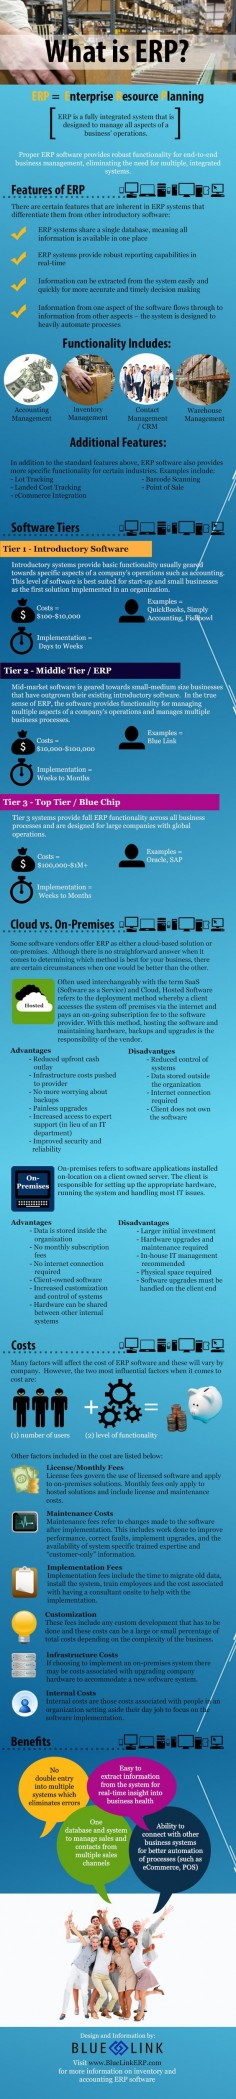 What is ERP? Check out this infographic to learn more.